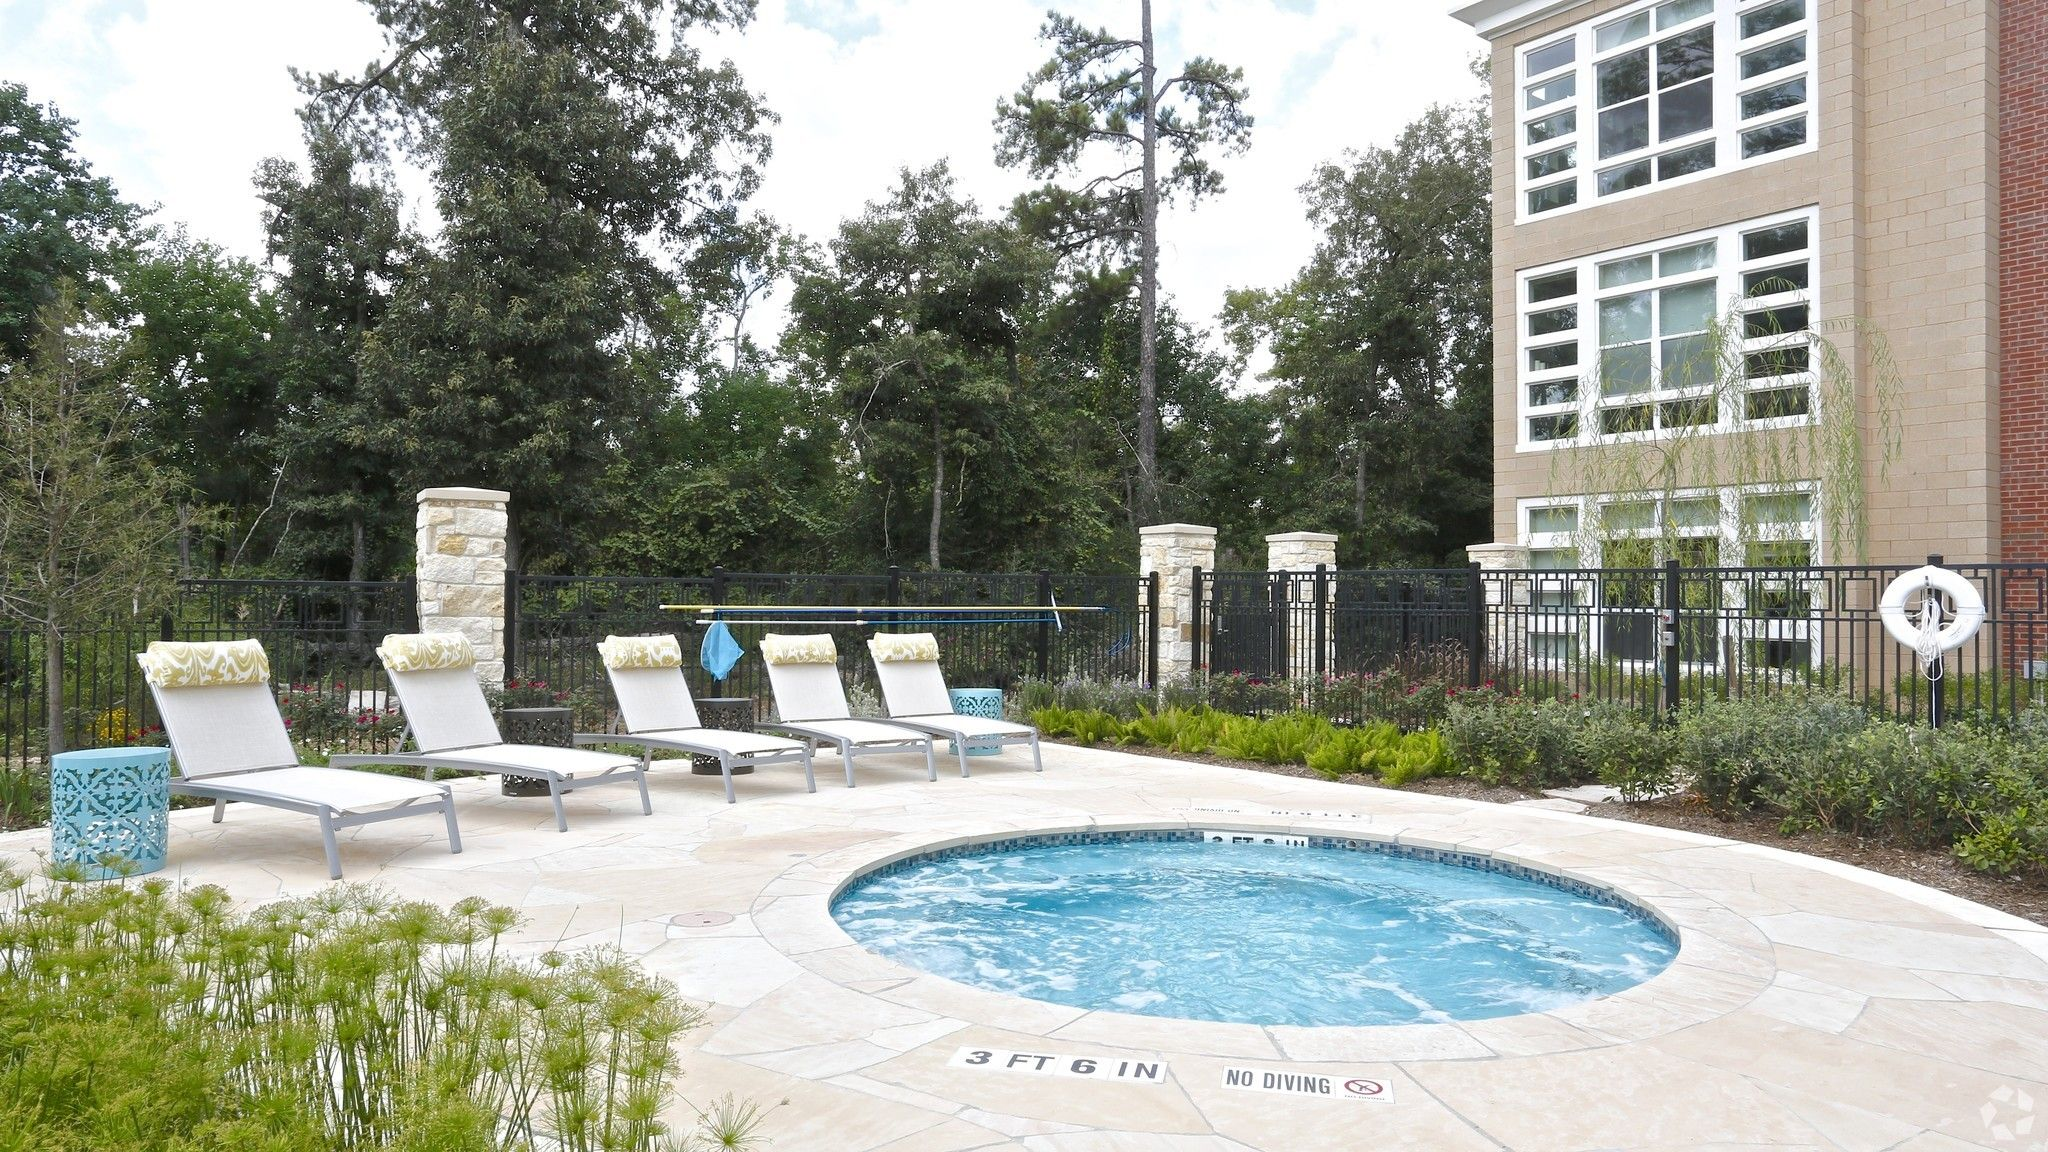 Hot Tub Apartments for rent, Apartment, Modern luxury